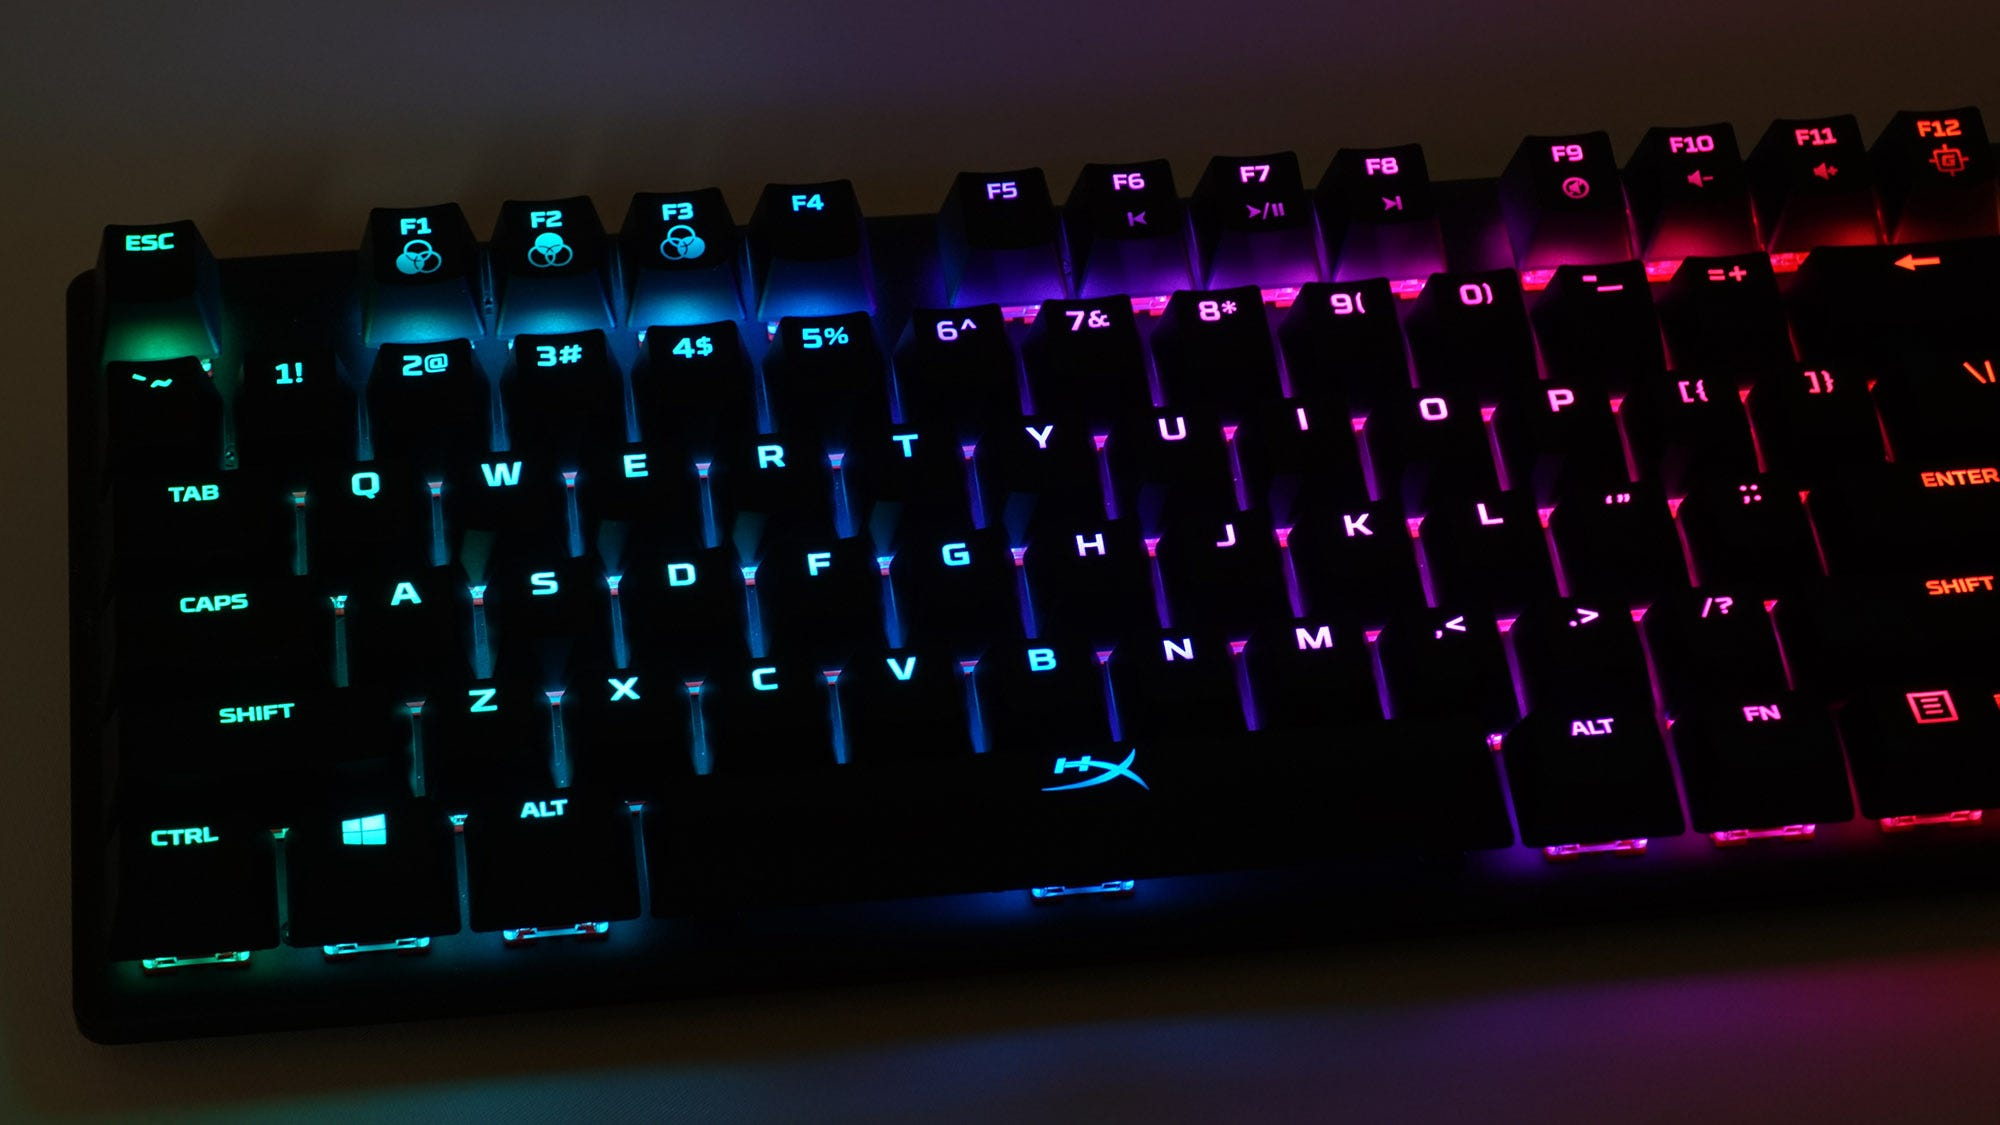 A shot of the RGB lighting in the dark.